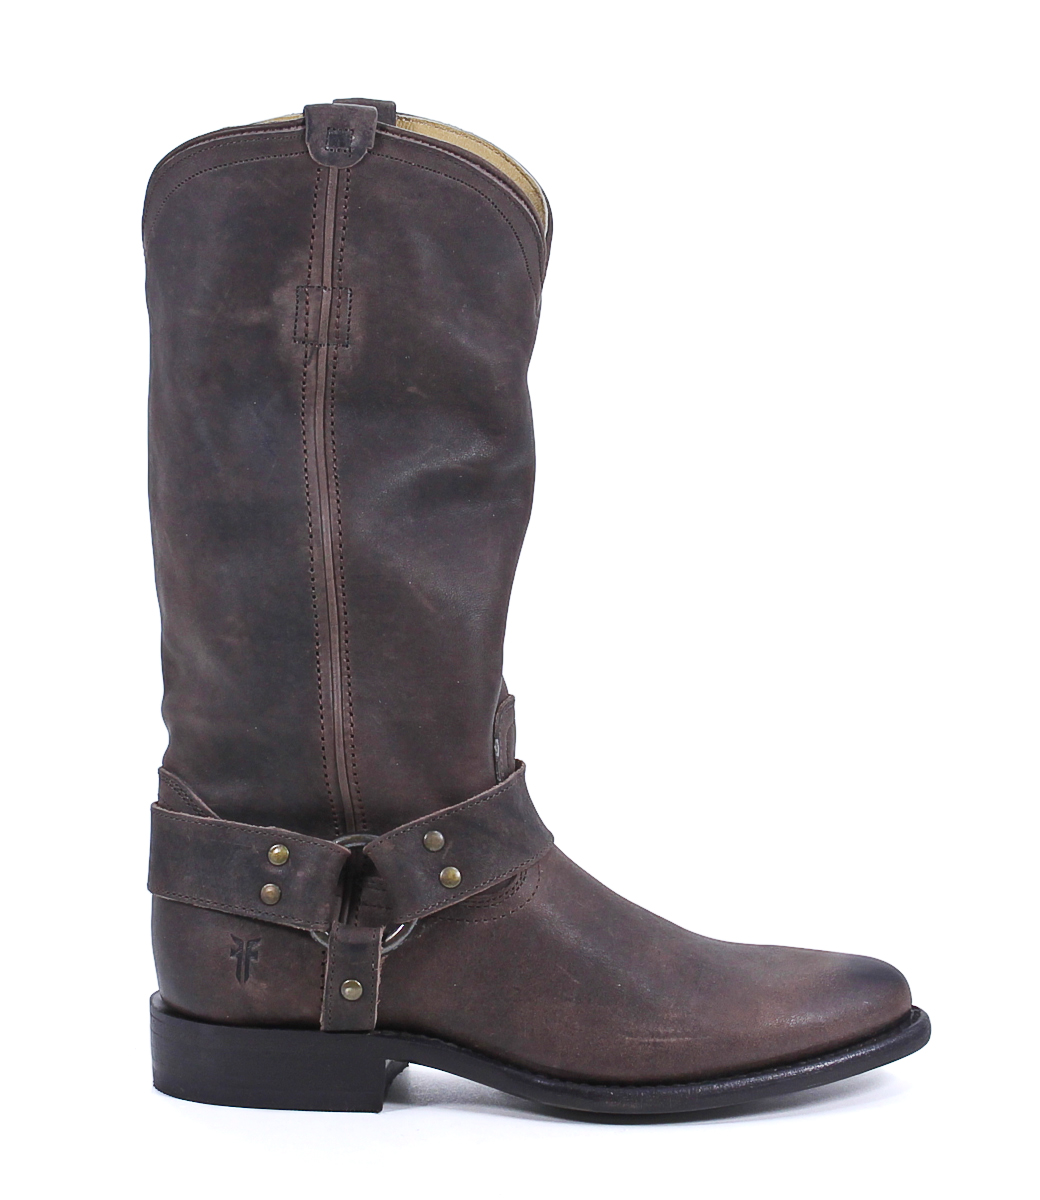 frye brown leather wyatt harness boots shoes 9 new ebay